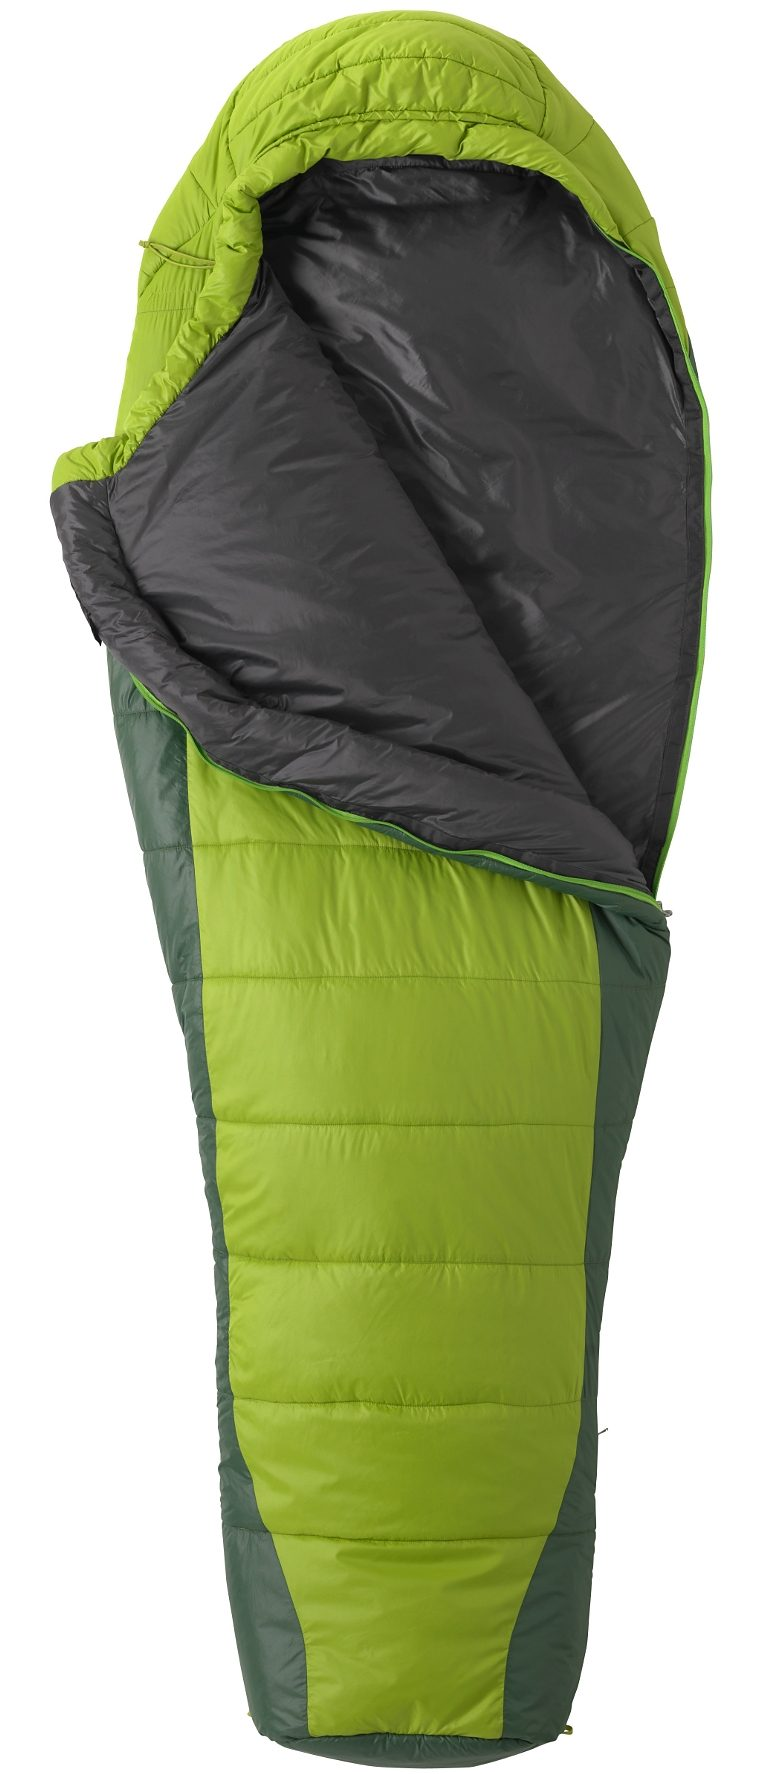 Marmot Schlafsack »Cloudbreak 30 Sleeping Bag Long«